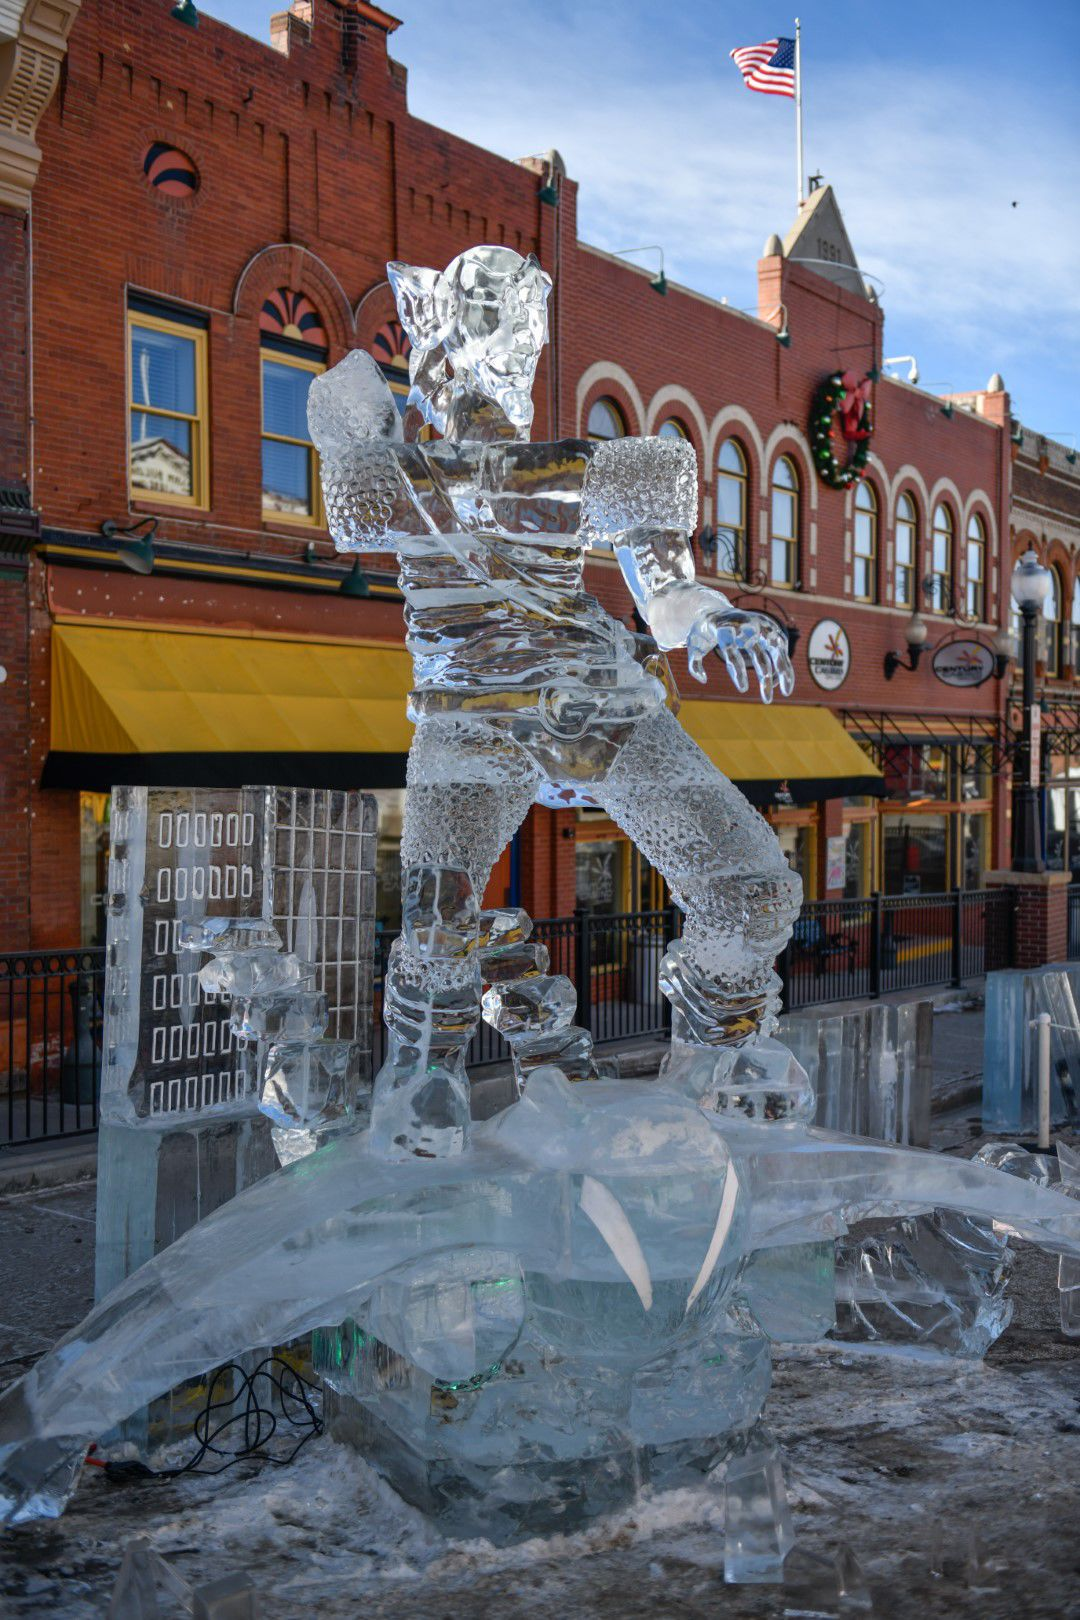 Cripple Creek Ice Festival touts superheroes in ice for 12th annual event